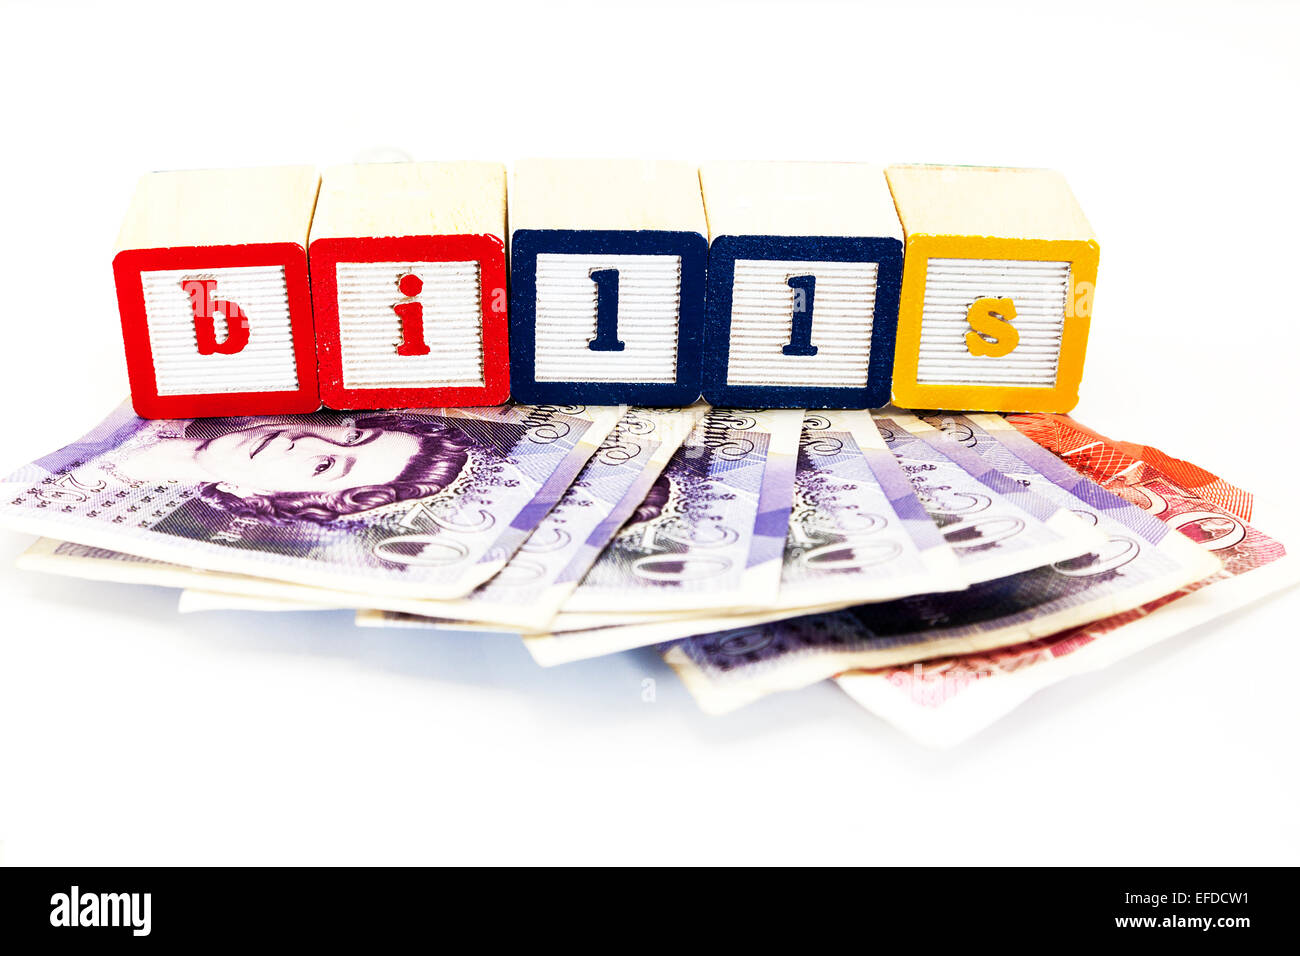 Bills high higher more money costs costing expense rising rise standard of living increasing Copy space cut out - Stock Image